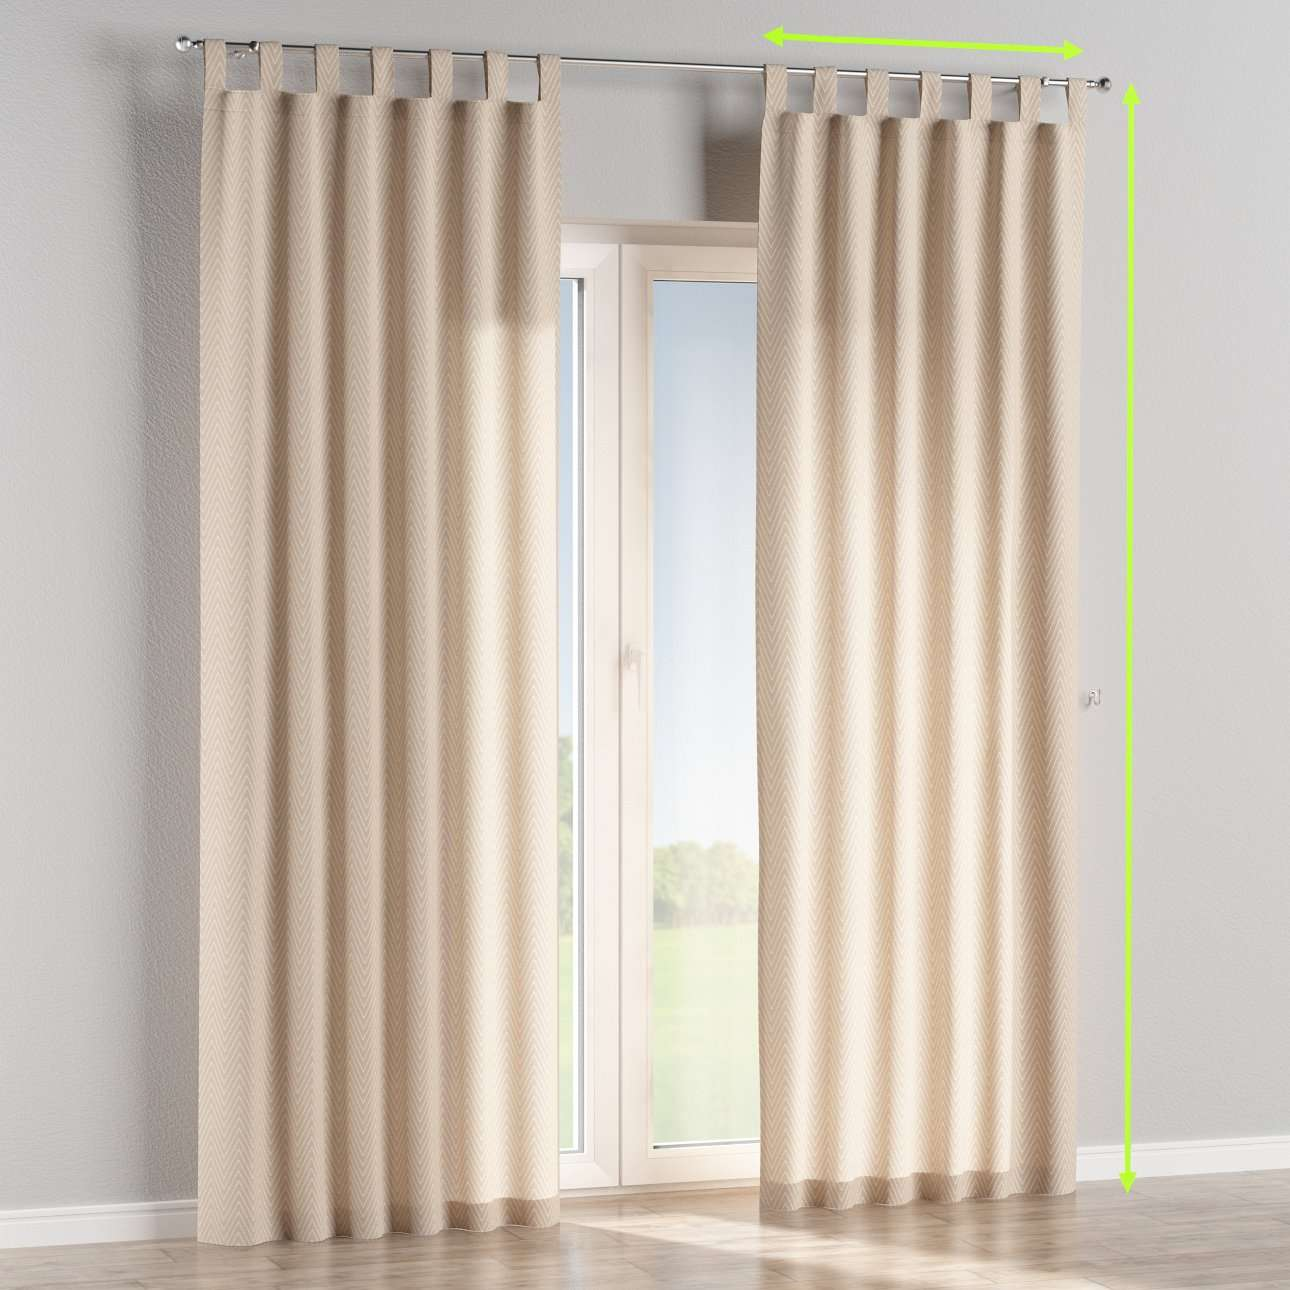 Tab top lined curtains in collection Brooklyn, fabric: 137-91